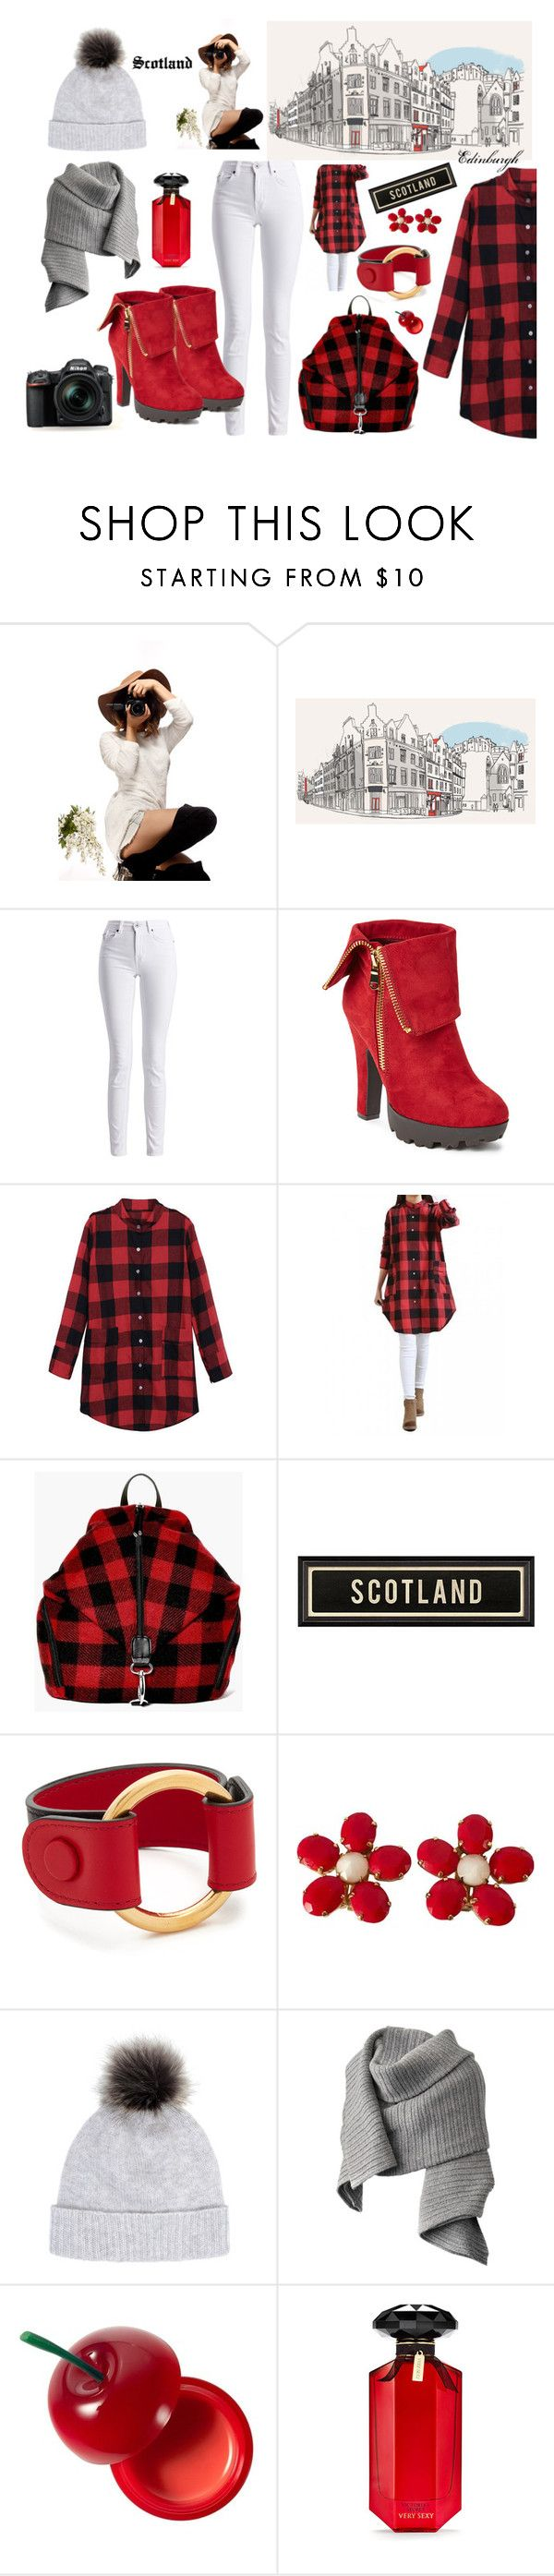 """""""#outfitsfortravel #fashion #winter #travel #Scotland #Europe #traveloutfits"""" by edin-levic ❤ liked on Polyvore featuring Barbour International, Wild Diva, Boohoo, Marni, Schreiner, Helen Moore, Acne Studios, TONYMOLY, Victoria's Secret and Nikon"""